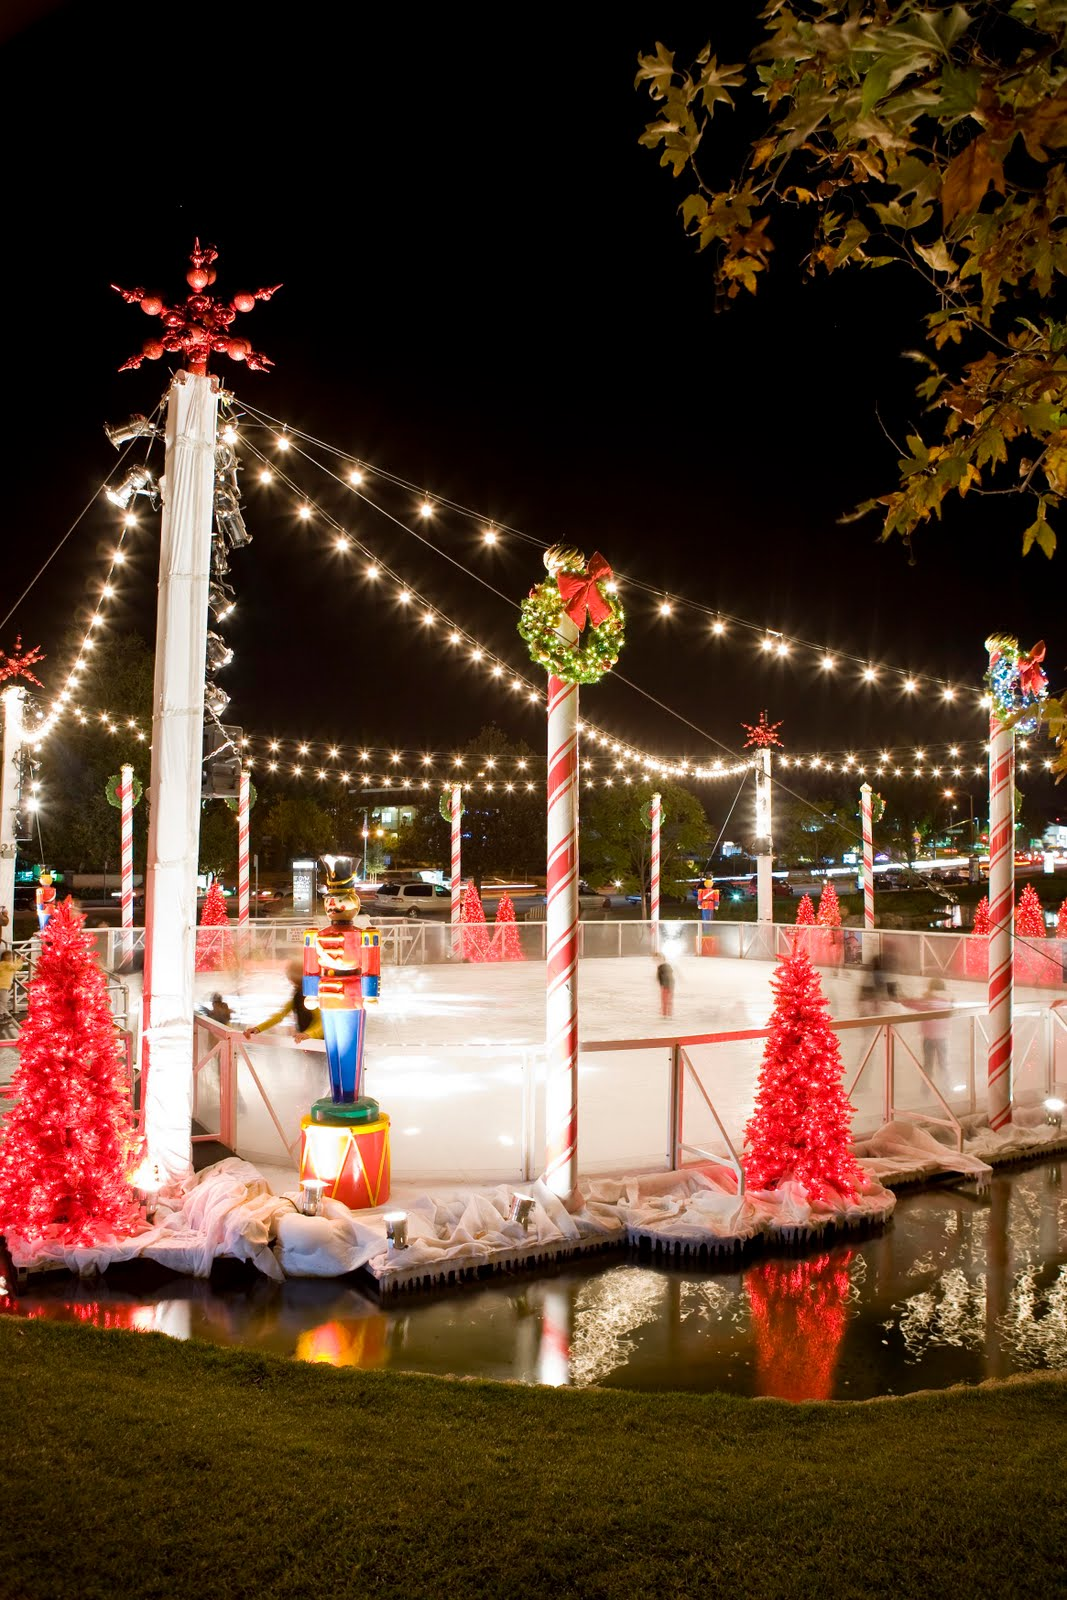 Outdoor ice rink open for skating at Frisco Square